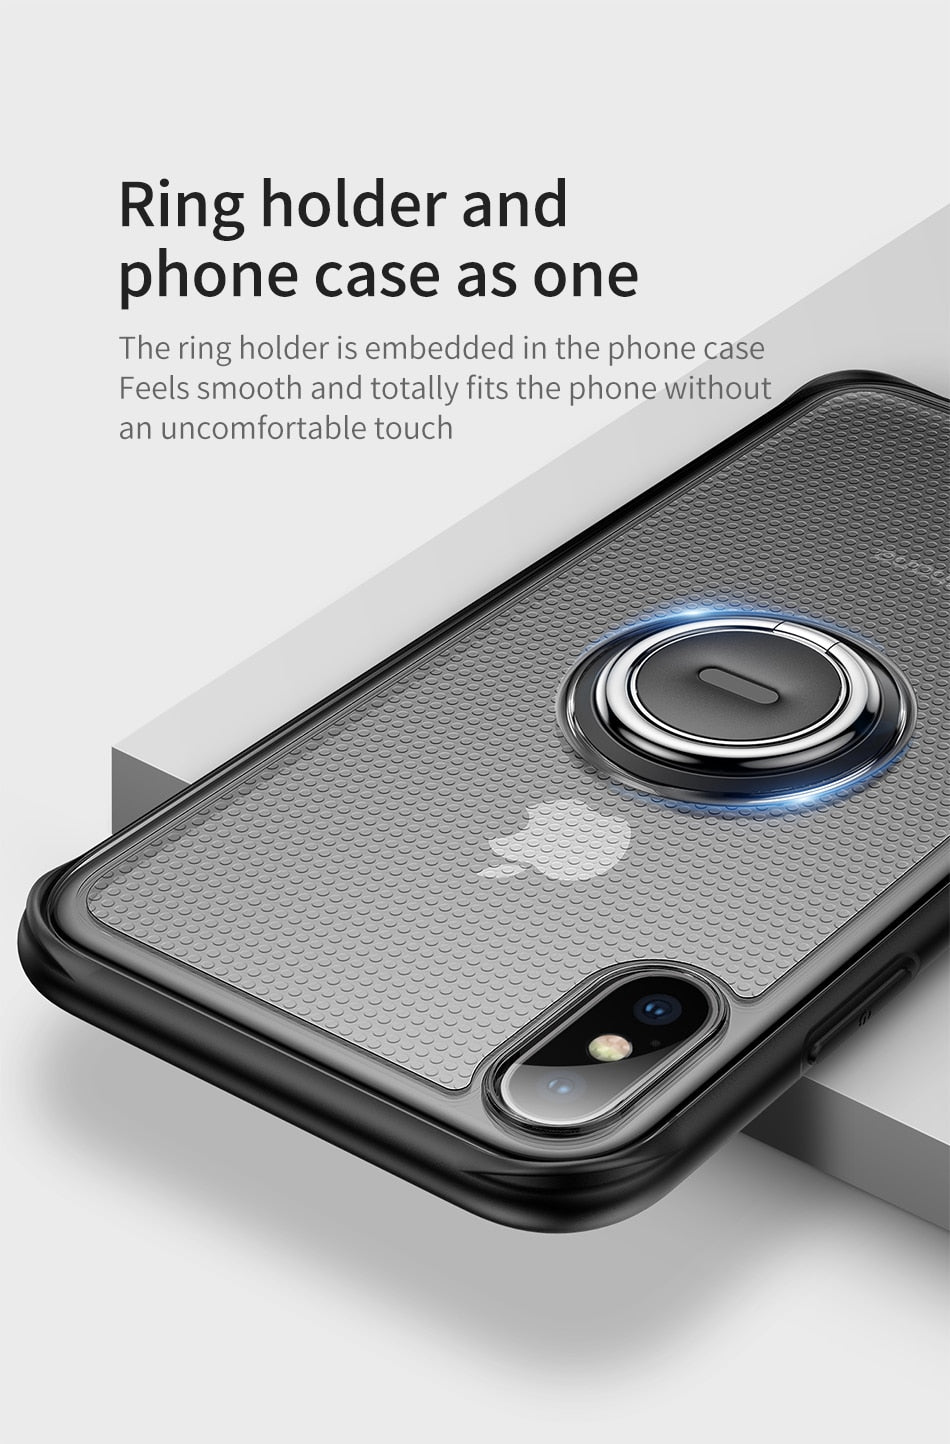 Finger Ring Holder Case For iPhone XS Max XR X With Kickstand Soft TPU Protective Cover 360 Degree Rotatable Finger Ring Case For iPhone